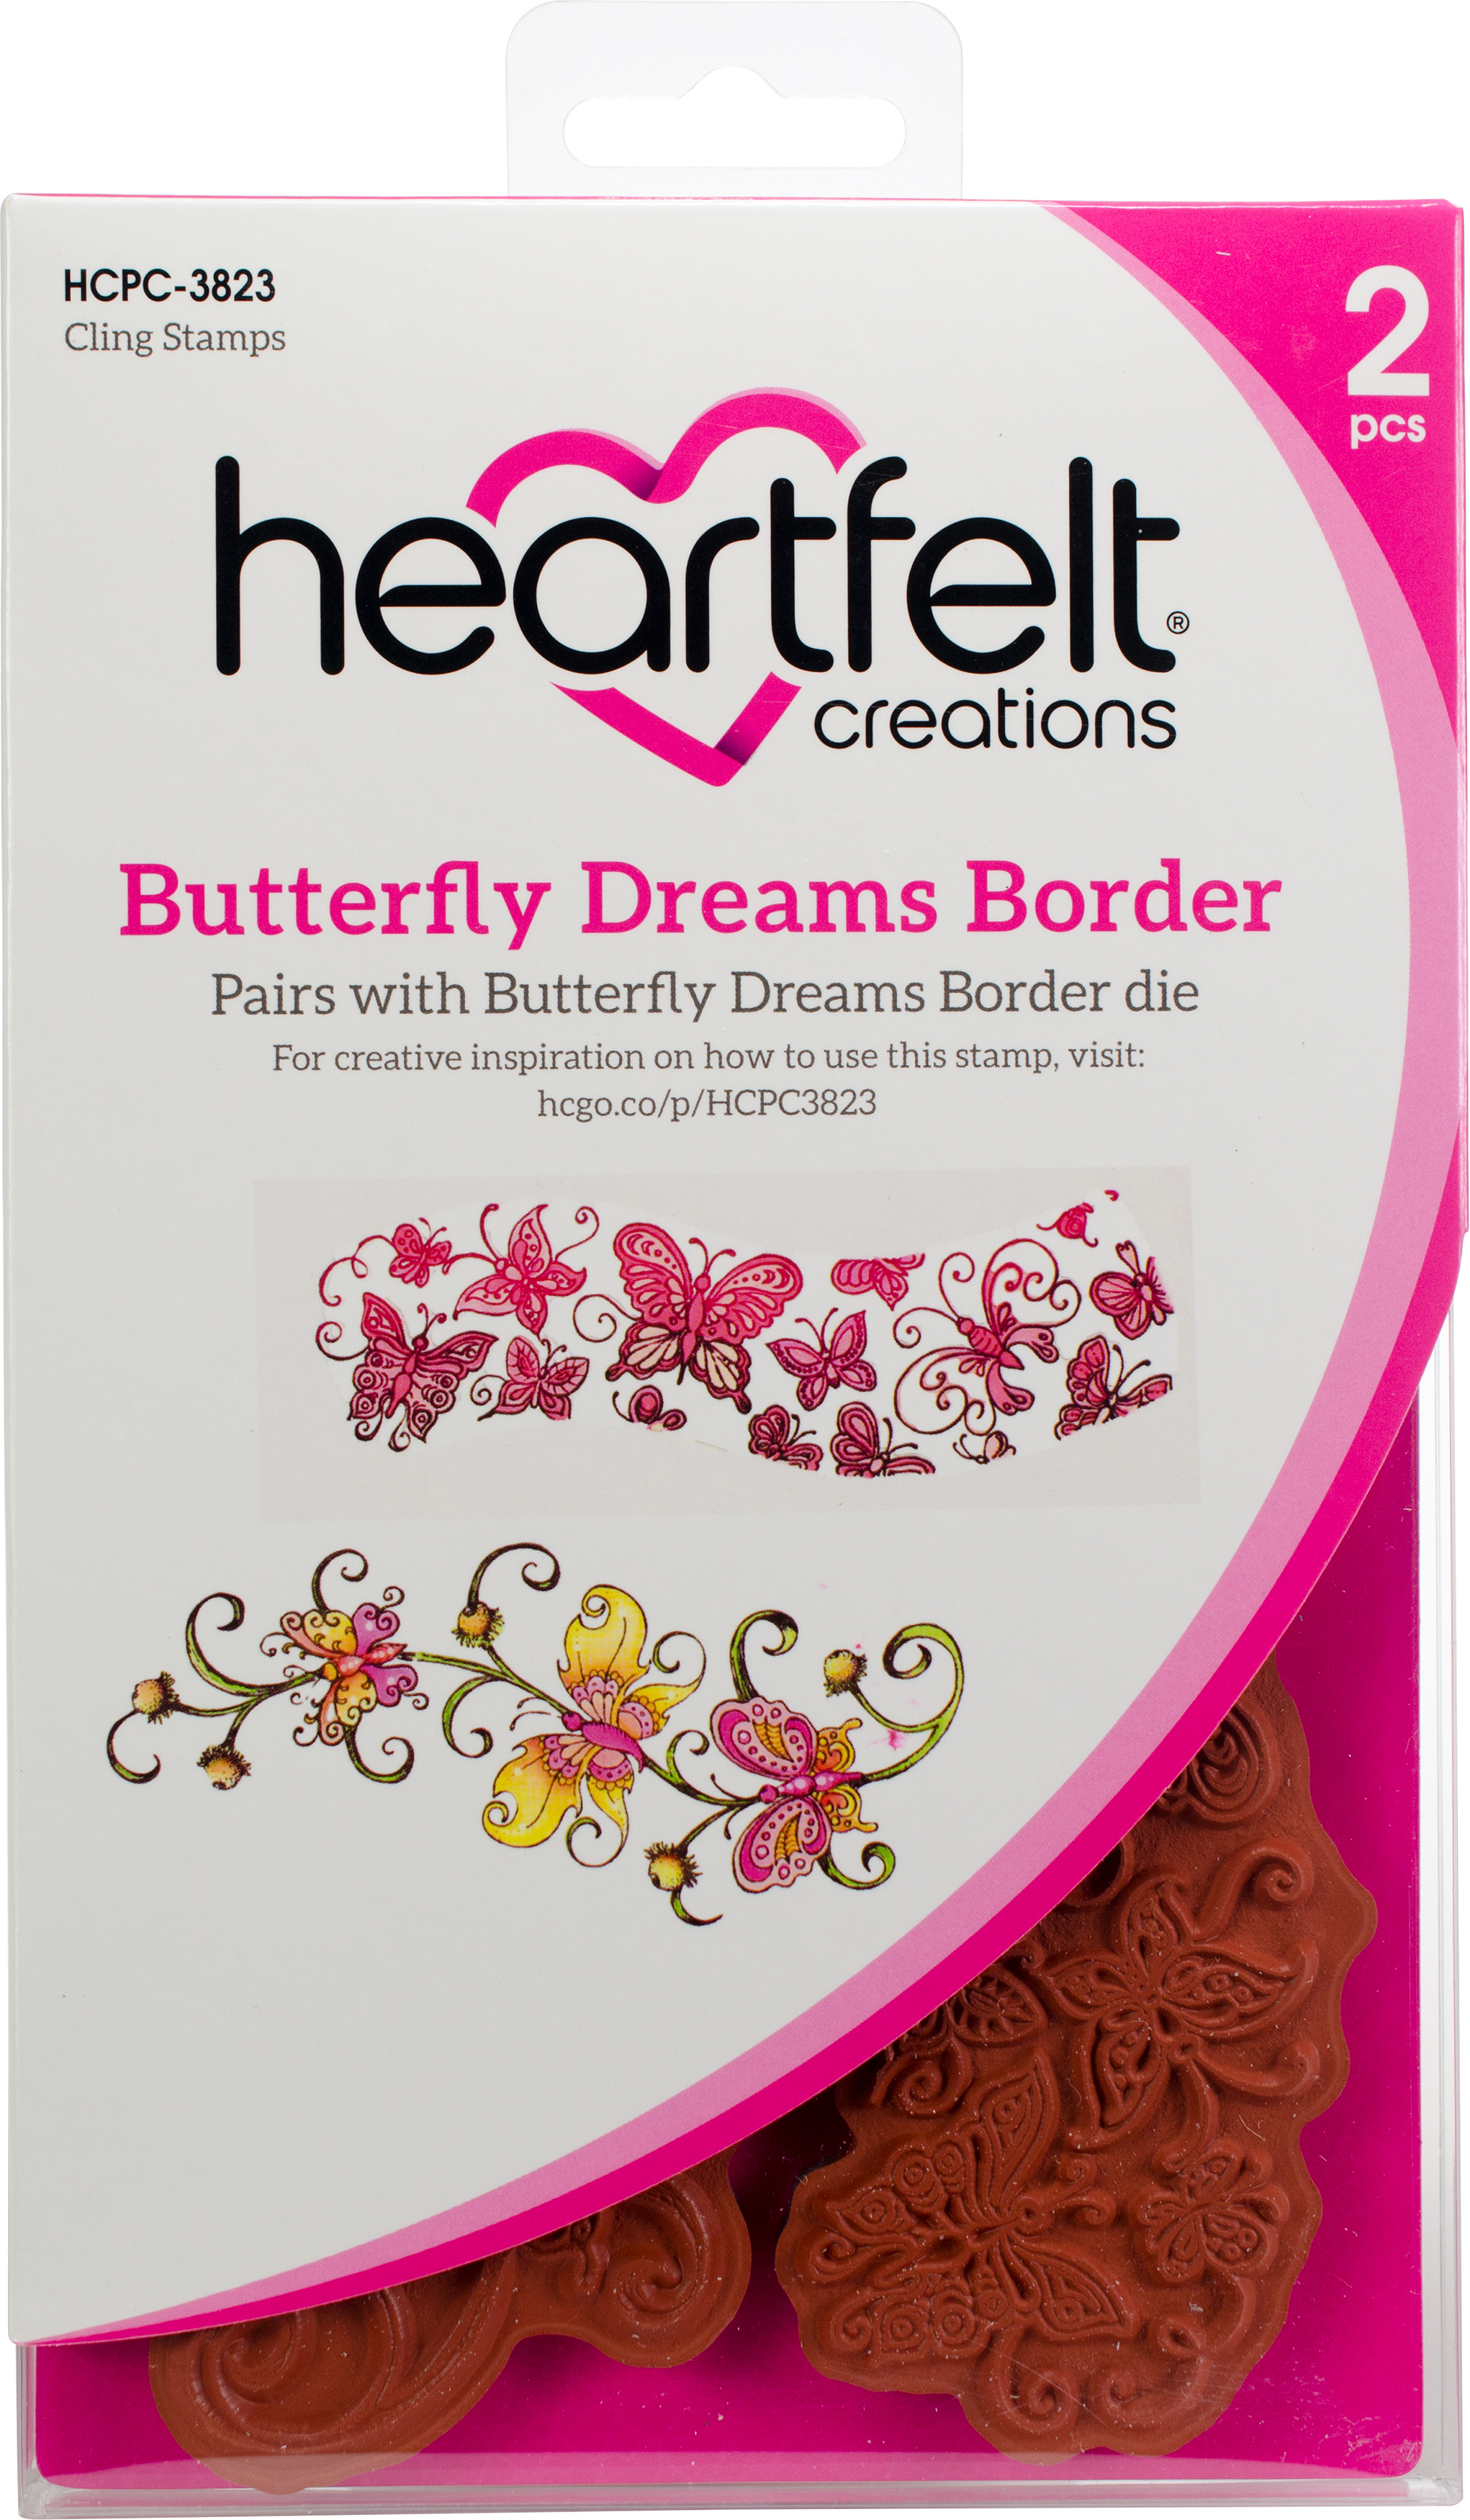 Butterfly Dreams Border Stamp